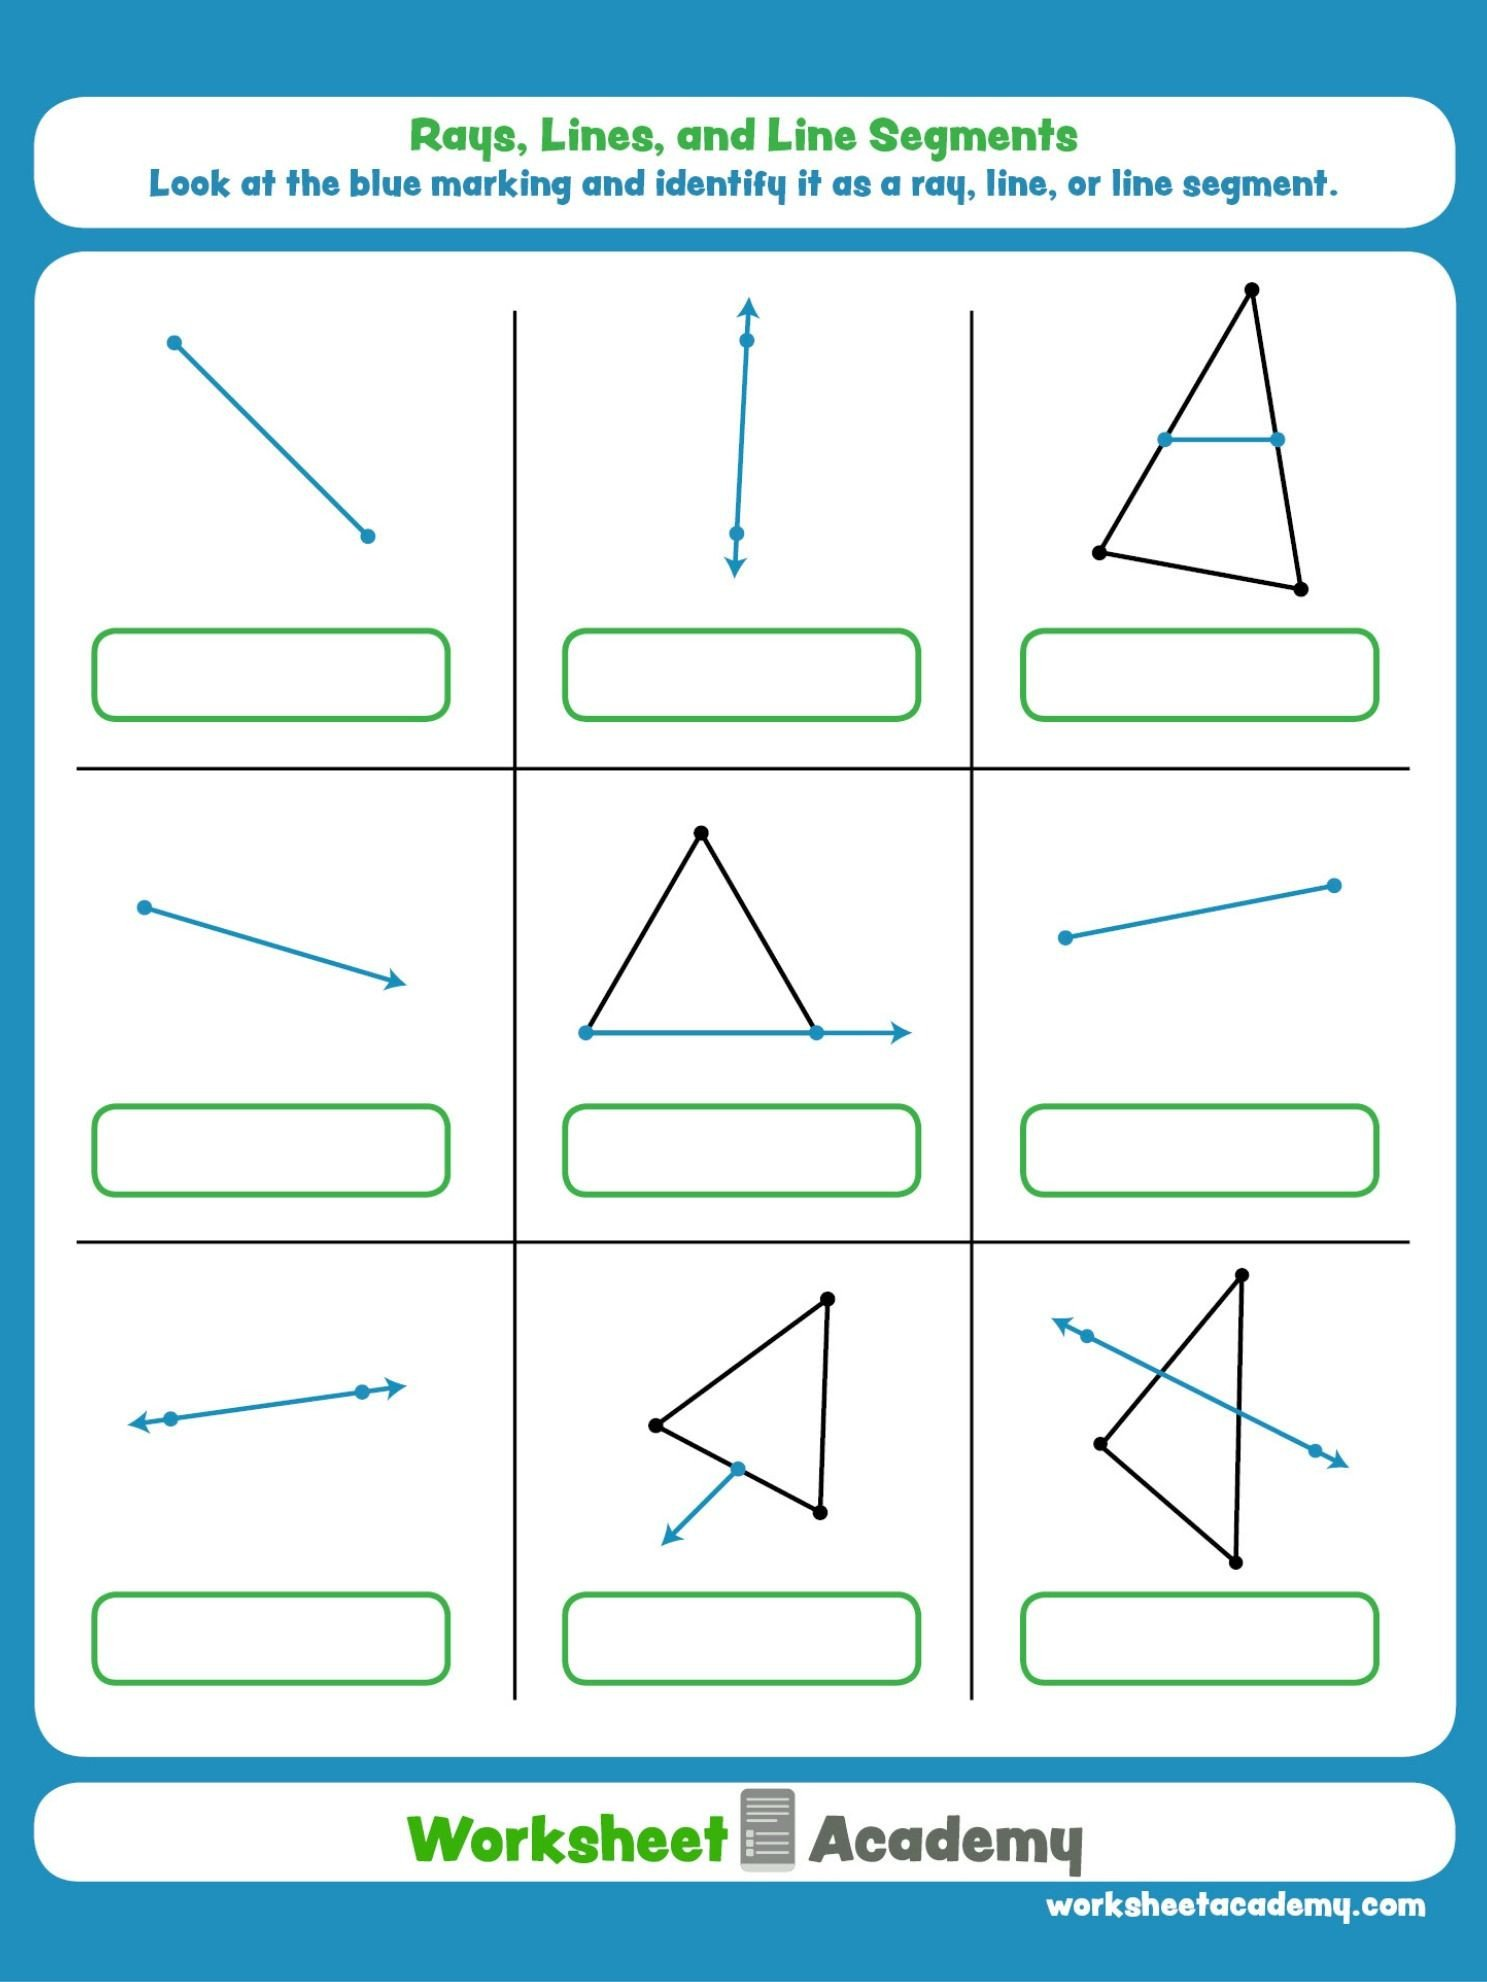 Lines Rays Line Segments Worksheets Get This Free Math Worksheet Printable to Help Your Student